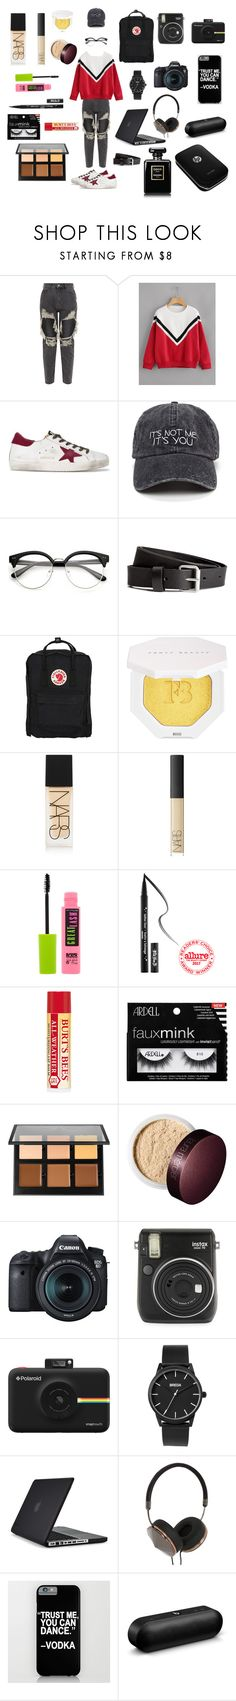 """""""Photography B**ch.."""" by voodoodoll-666 on Polyvore featuring Golden Goose, Fjällräven, Puma, NARS Cosmetics, Maybelline, Kat Von D, Ardell, Anastasia Beverly Hills, Laura Mercier and Eos"""